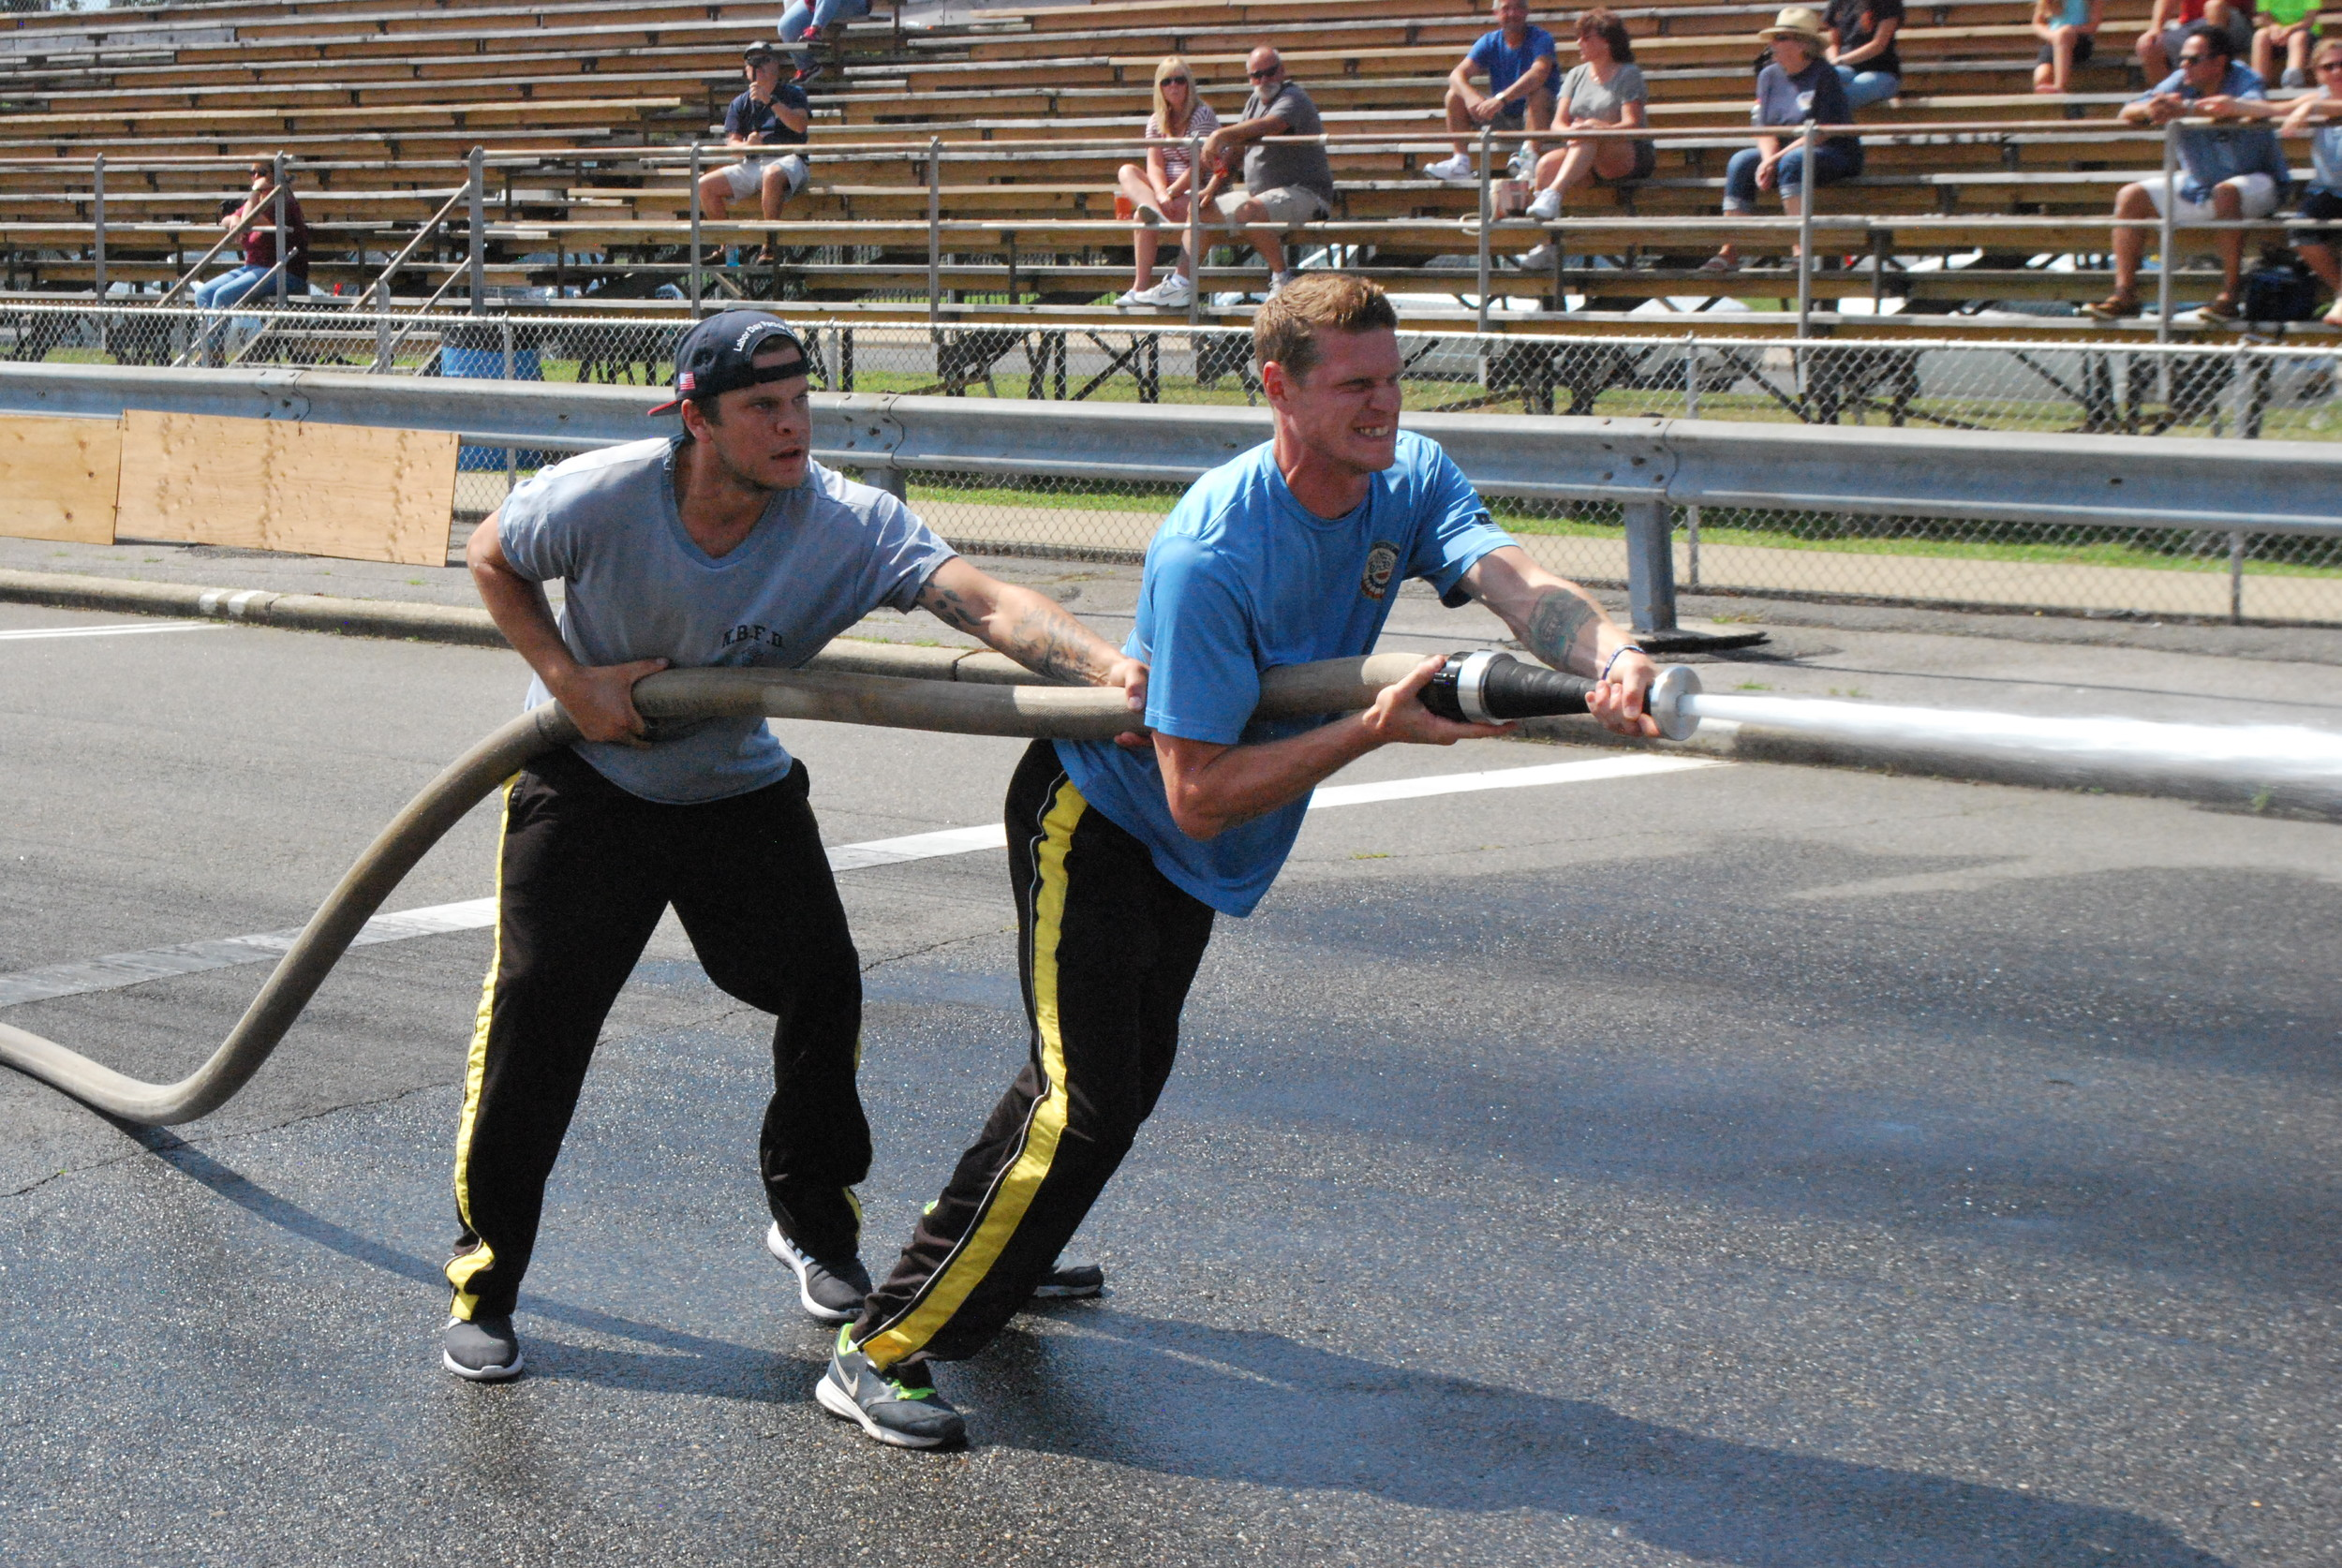 Joe and Sean Corcoran, both of the North Bellmore Fire Department, showed off their speed, strength and cooperation skills in the 6th Battalion's Old Fashioned Drill.